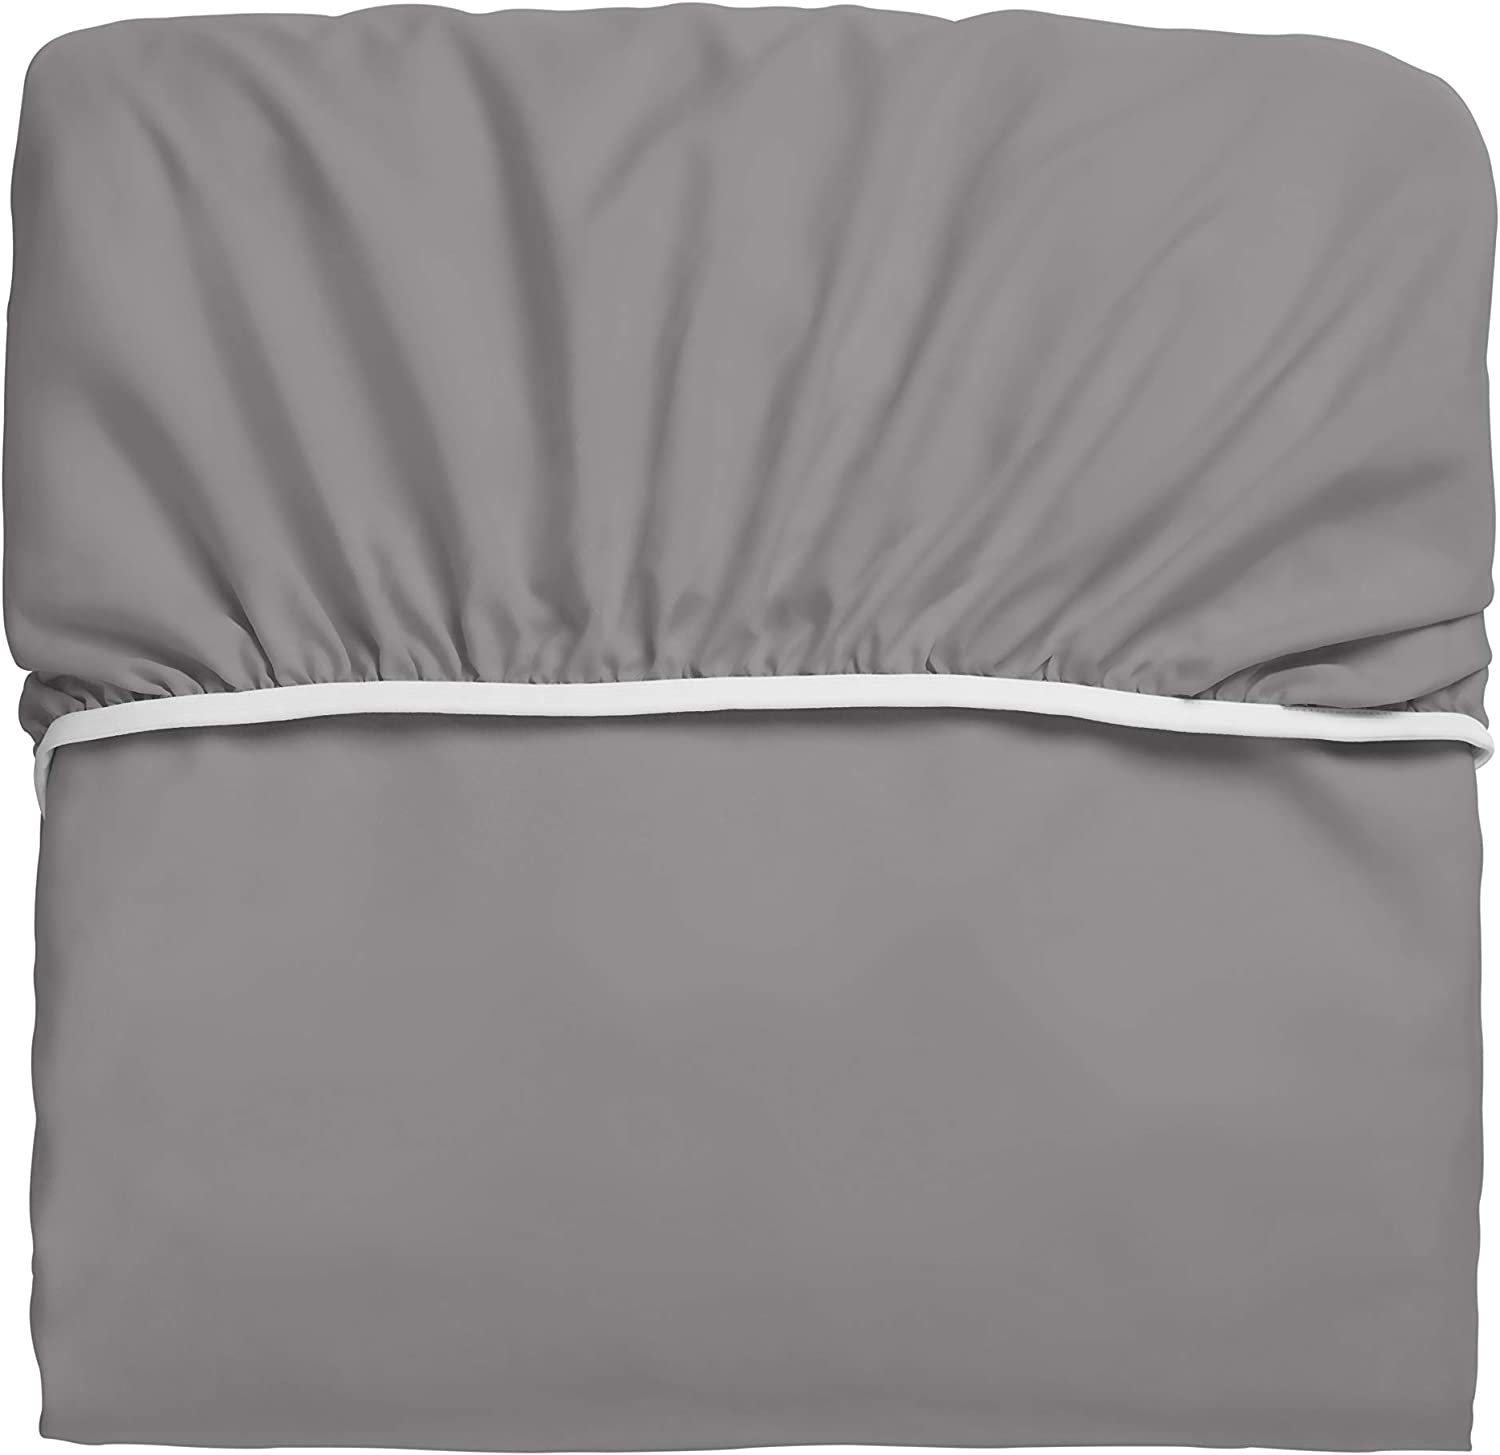 """Extra Deep Pocket Twin XL Bed-Sheets Medium Gray 3-Piece Includes: 18/""""-21/"""" Inch Super Extra Deep Pocket Fitted Sheet Oversize Flat Sheet 1 Zipper Closure Pillowcase Perfectly Fit Twin XL Size"""